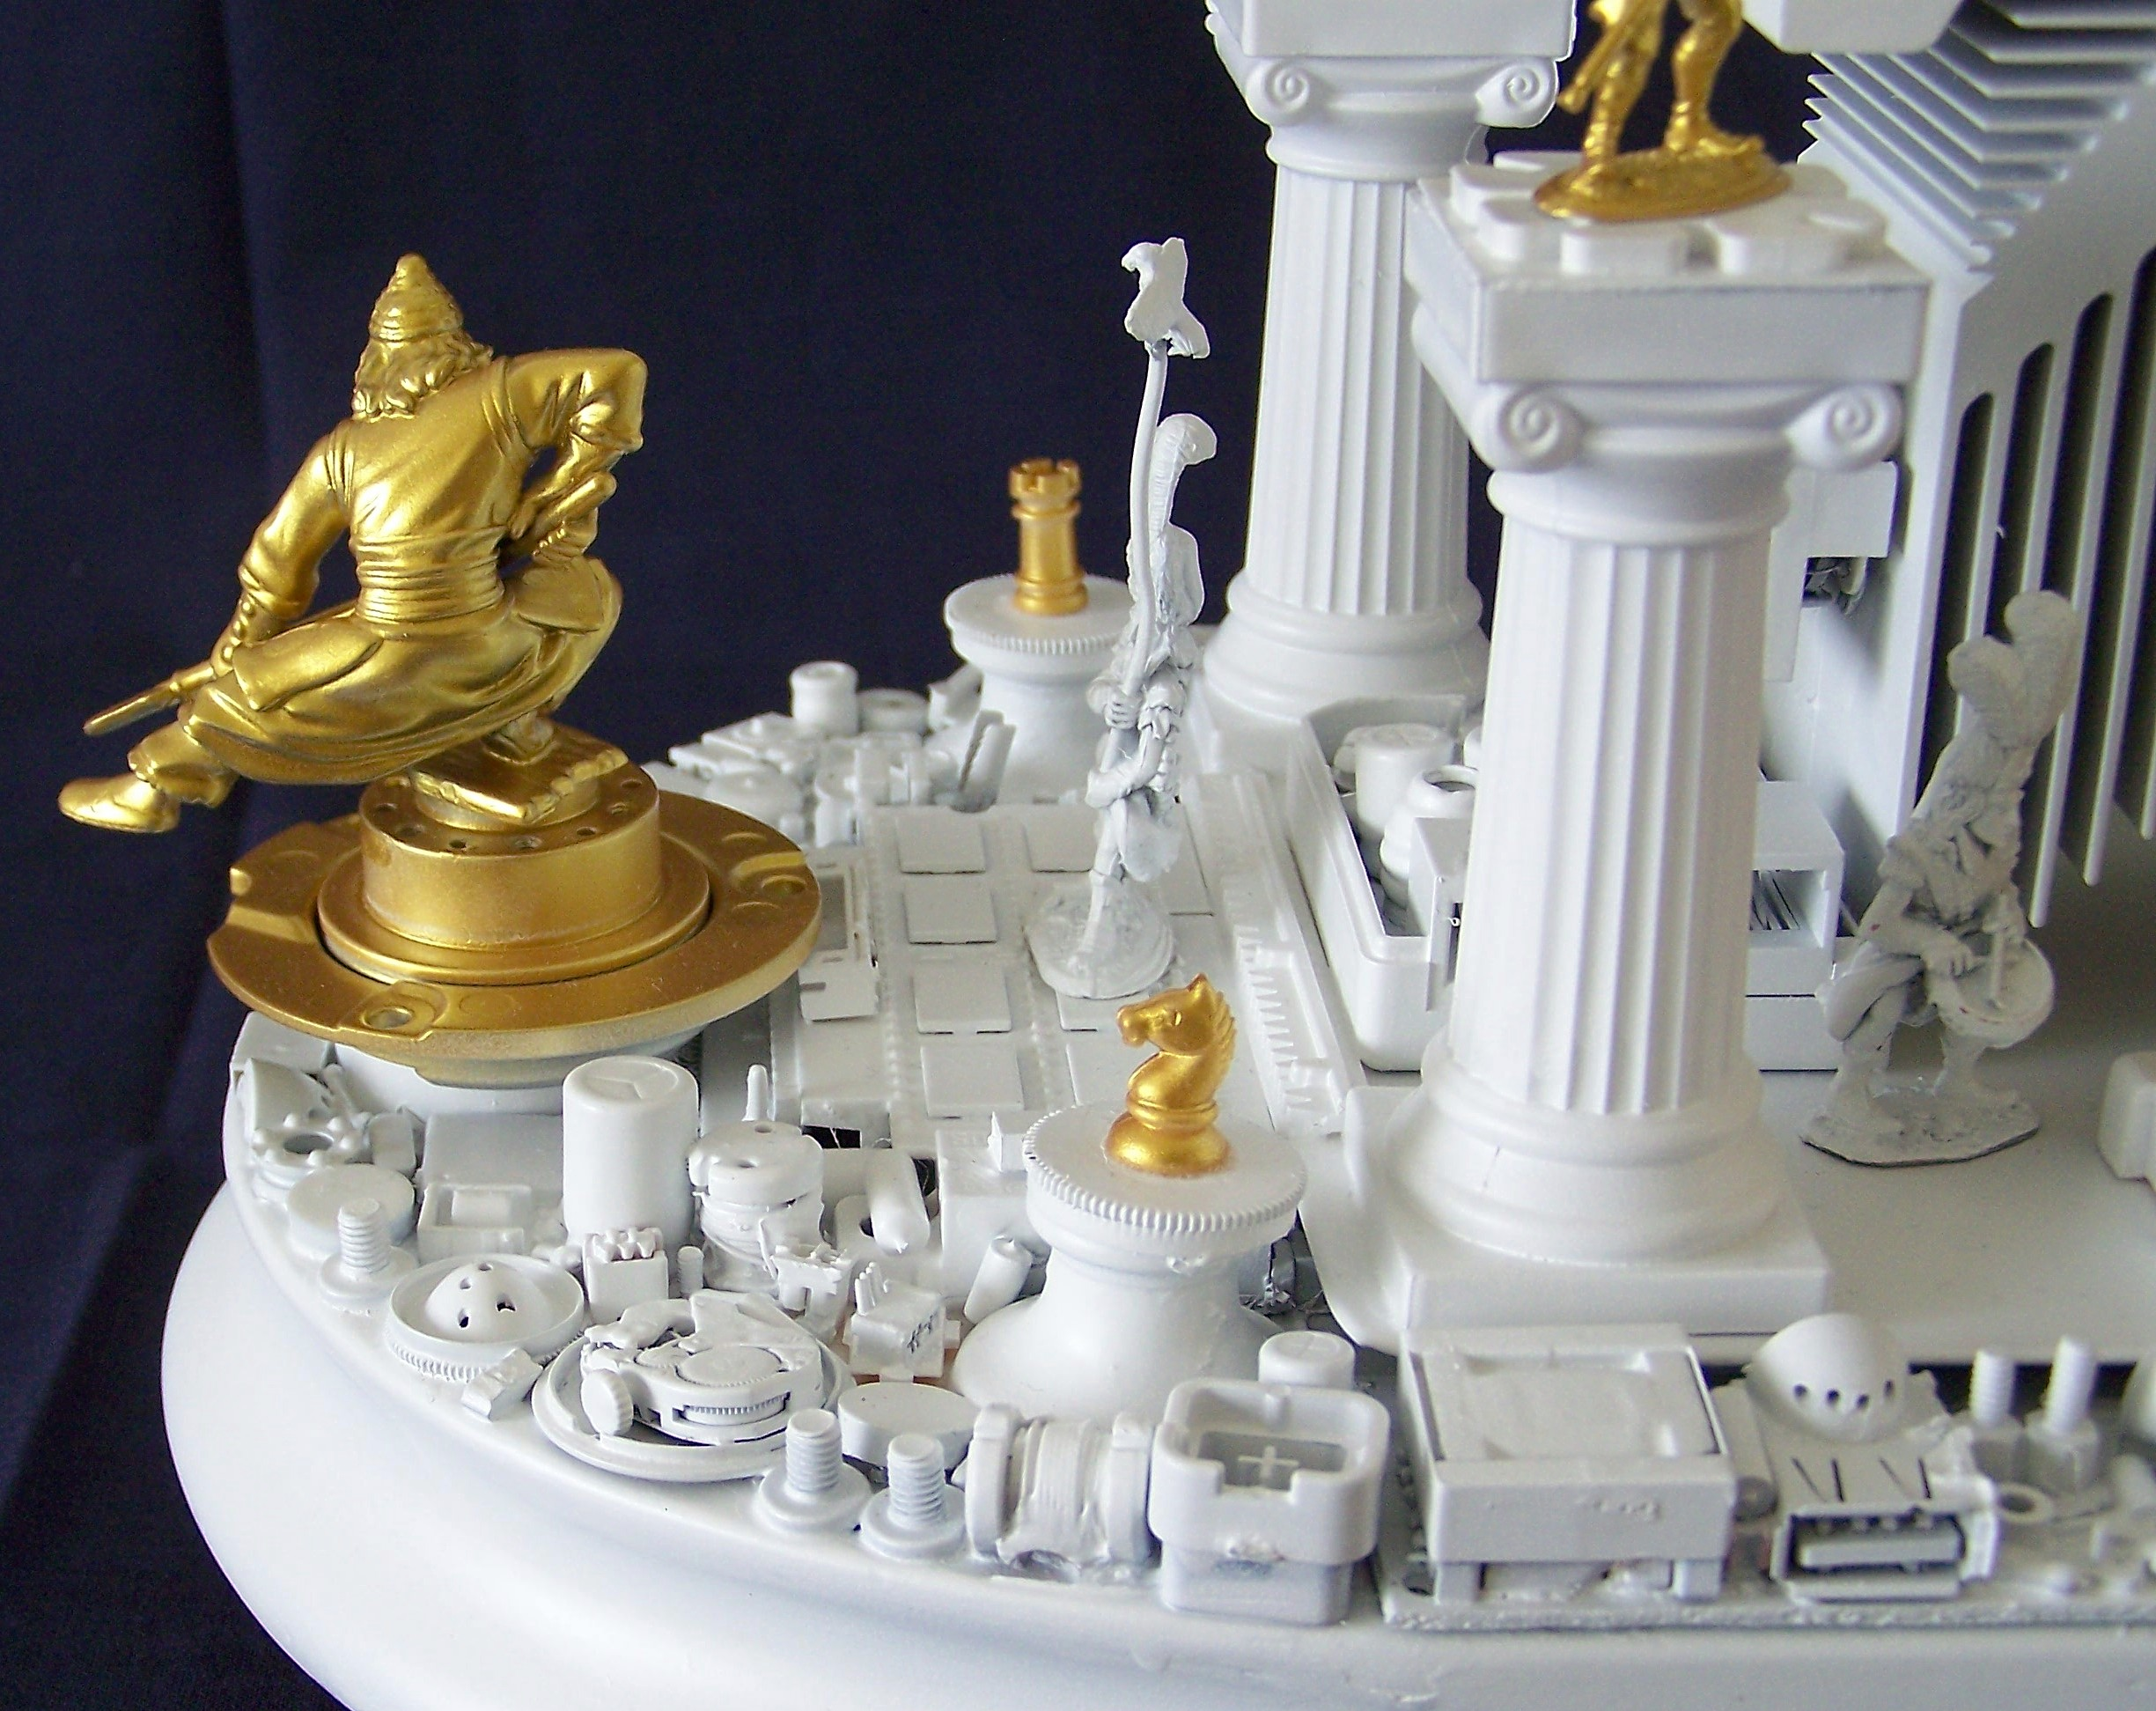 THE TEMPLE 5